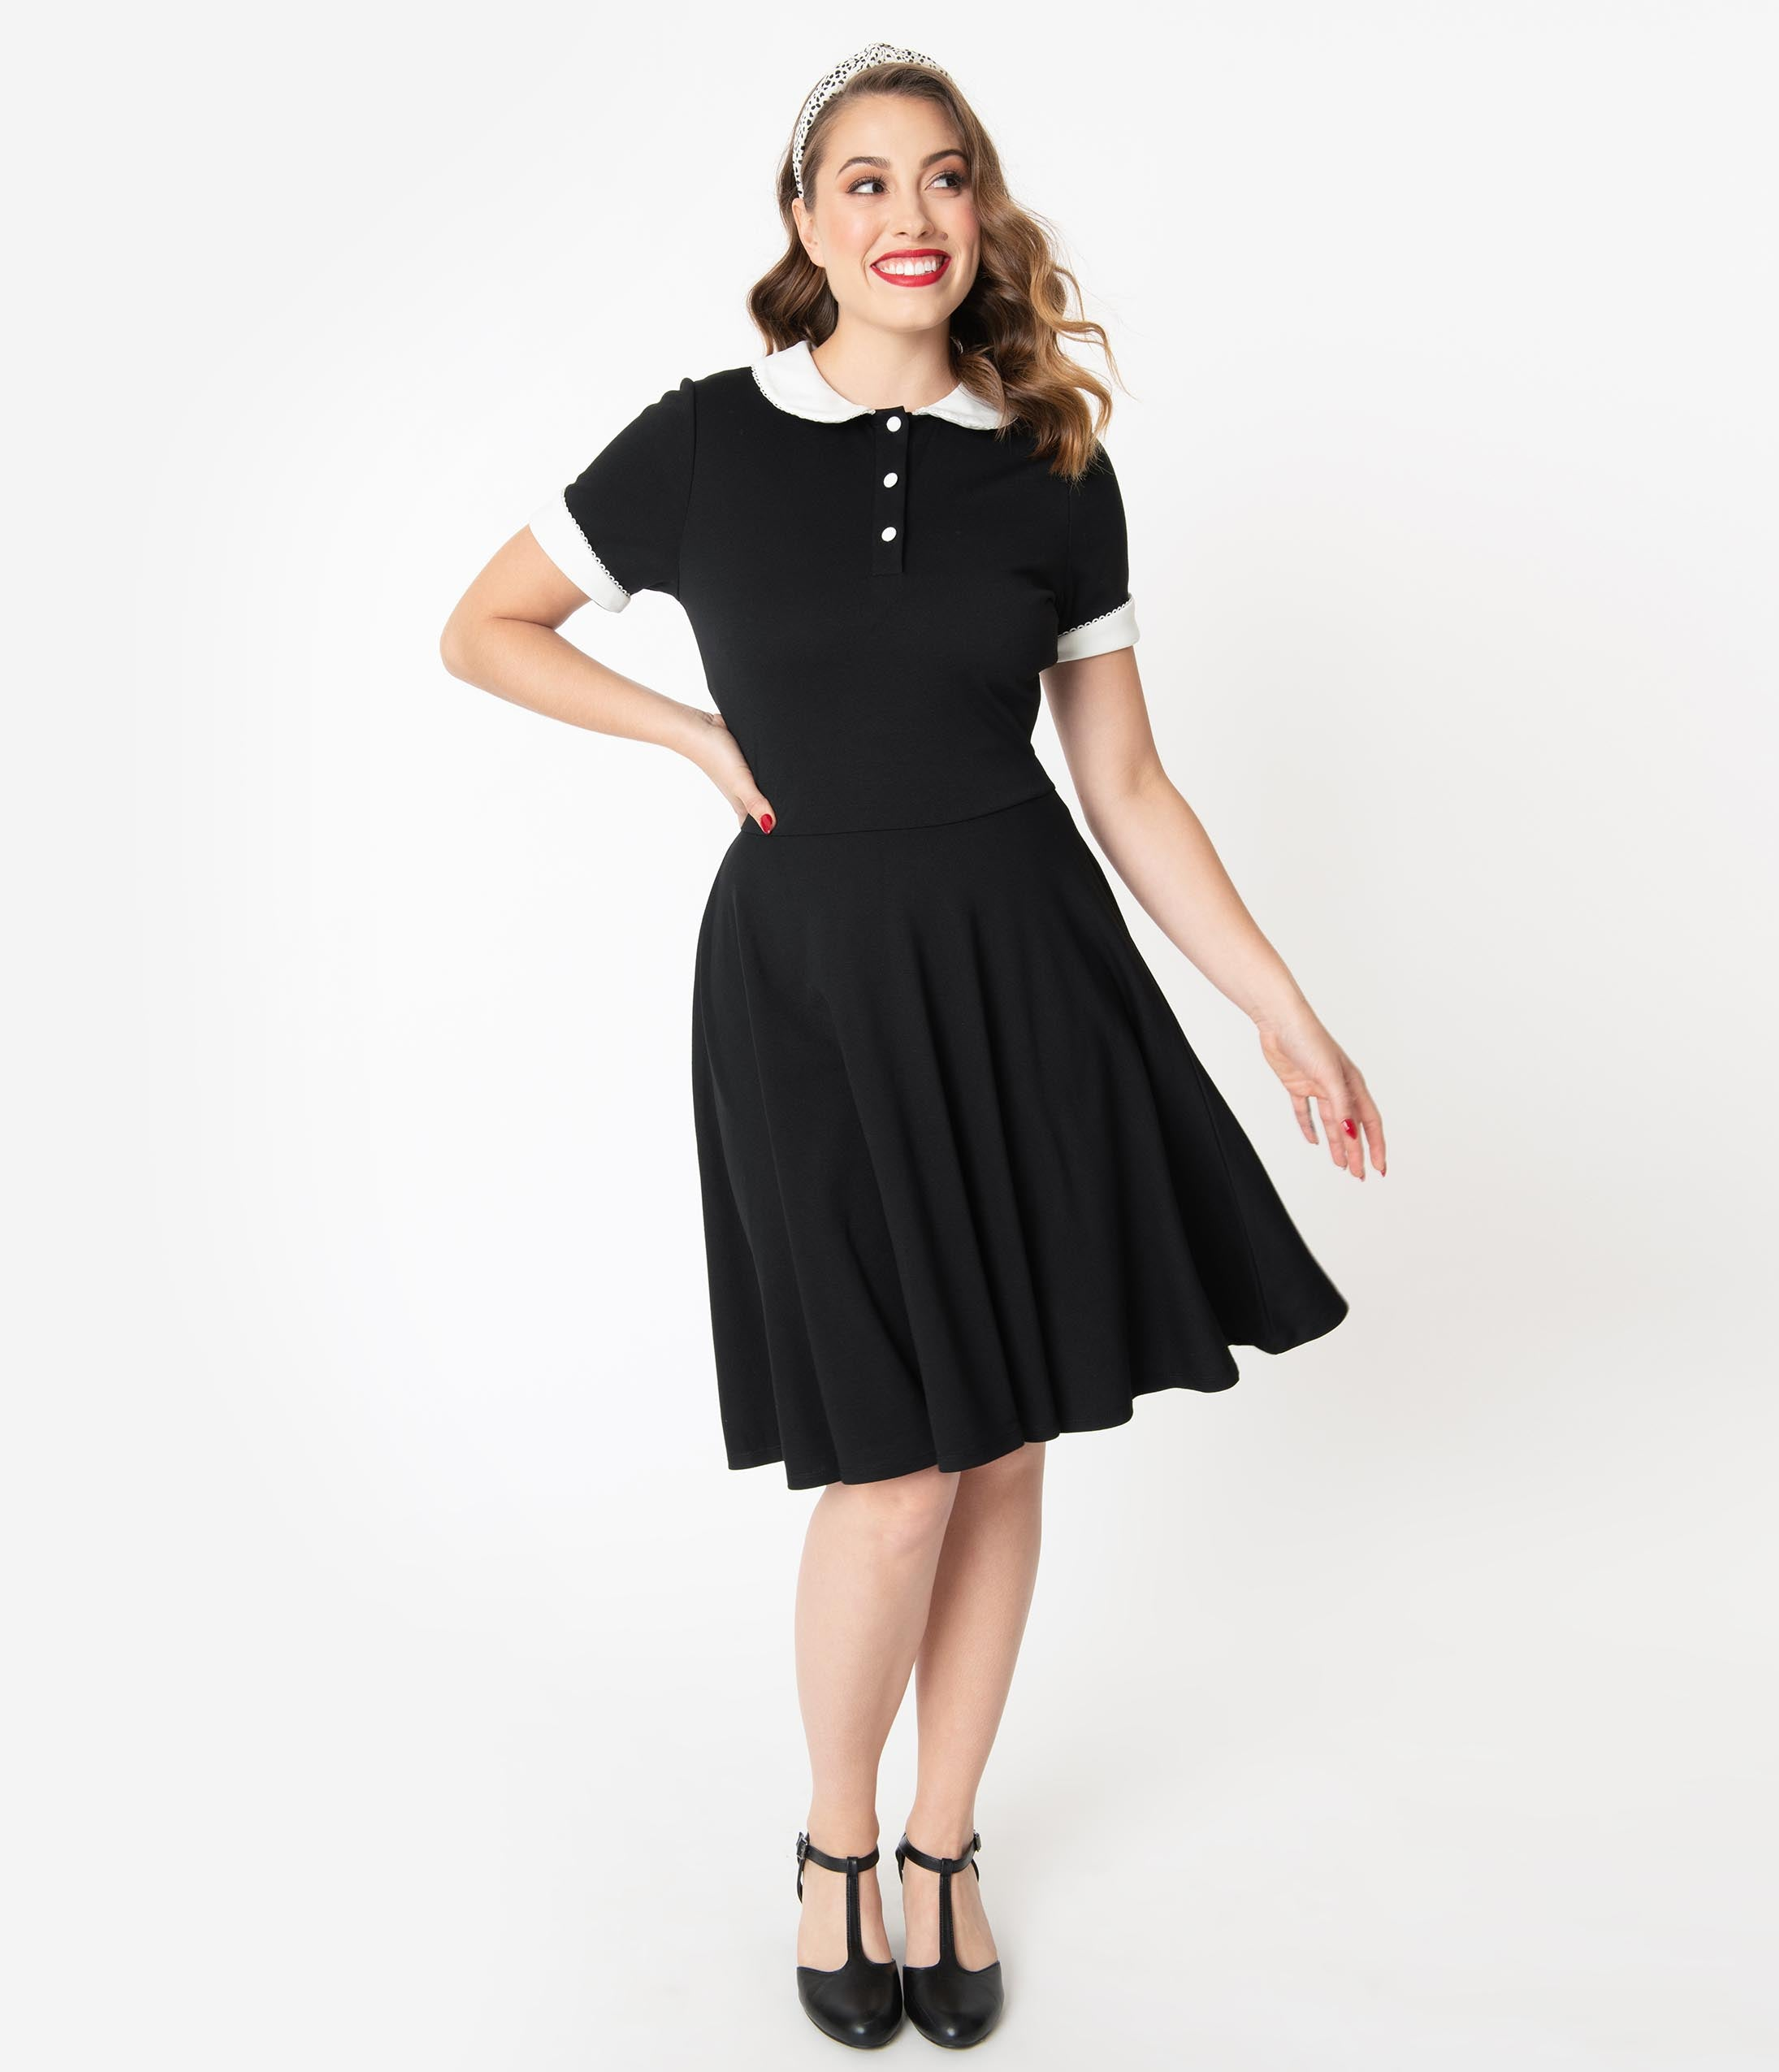 1950s House Dresses and Aprons History Unique Vintage Black  Ivory Collar Velma Fit  Flare Dress $78.00 AT vintagedancer.com